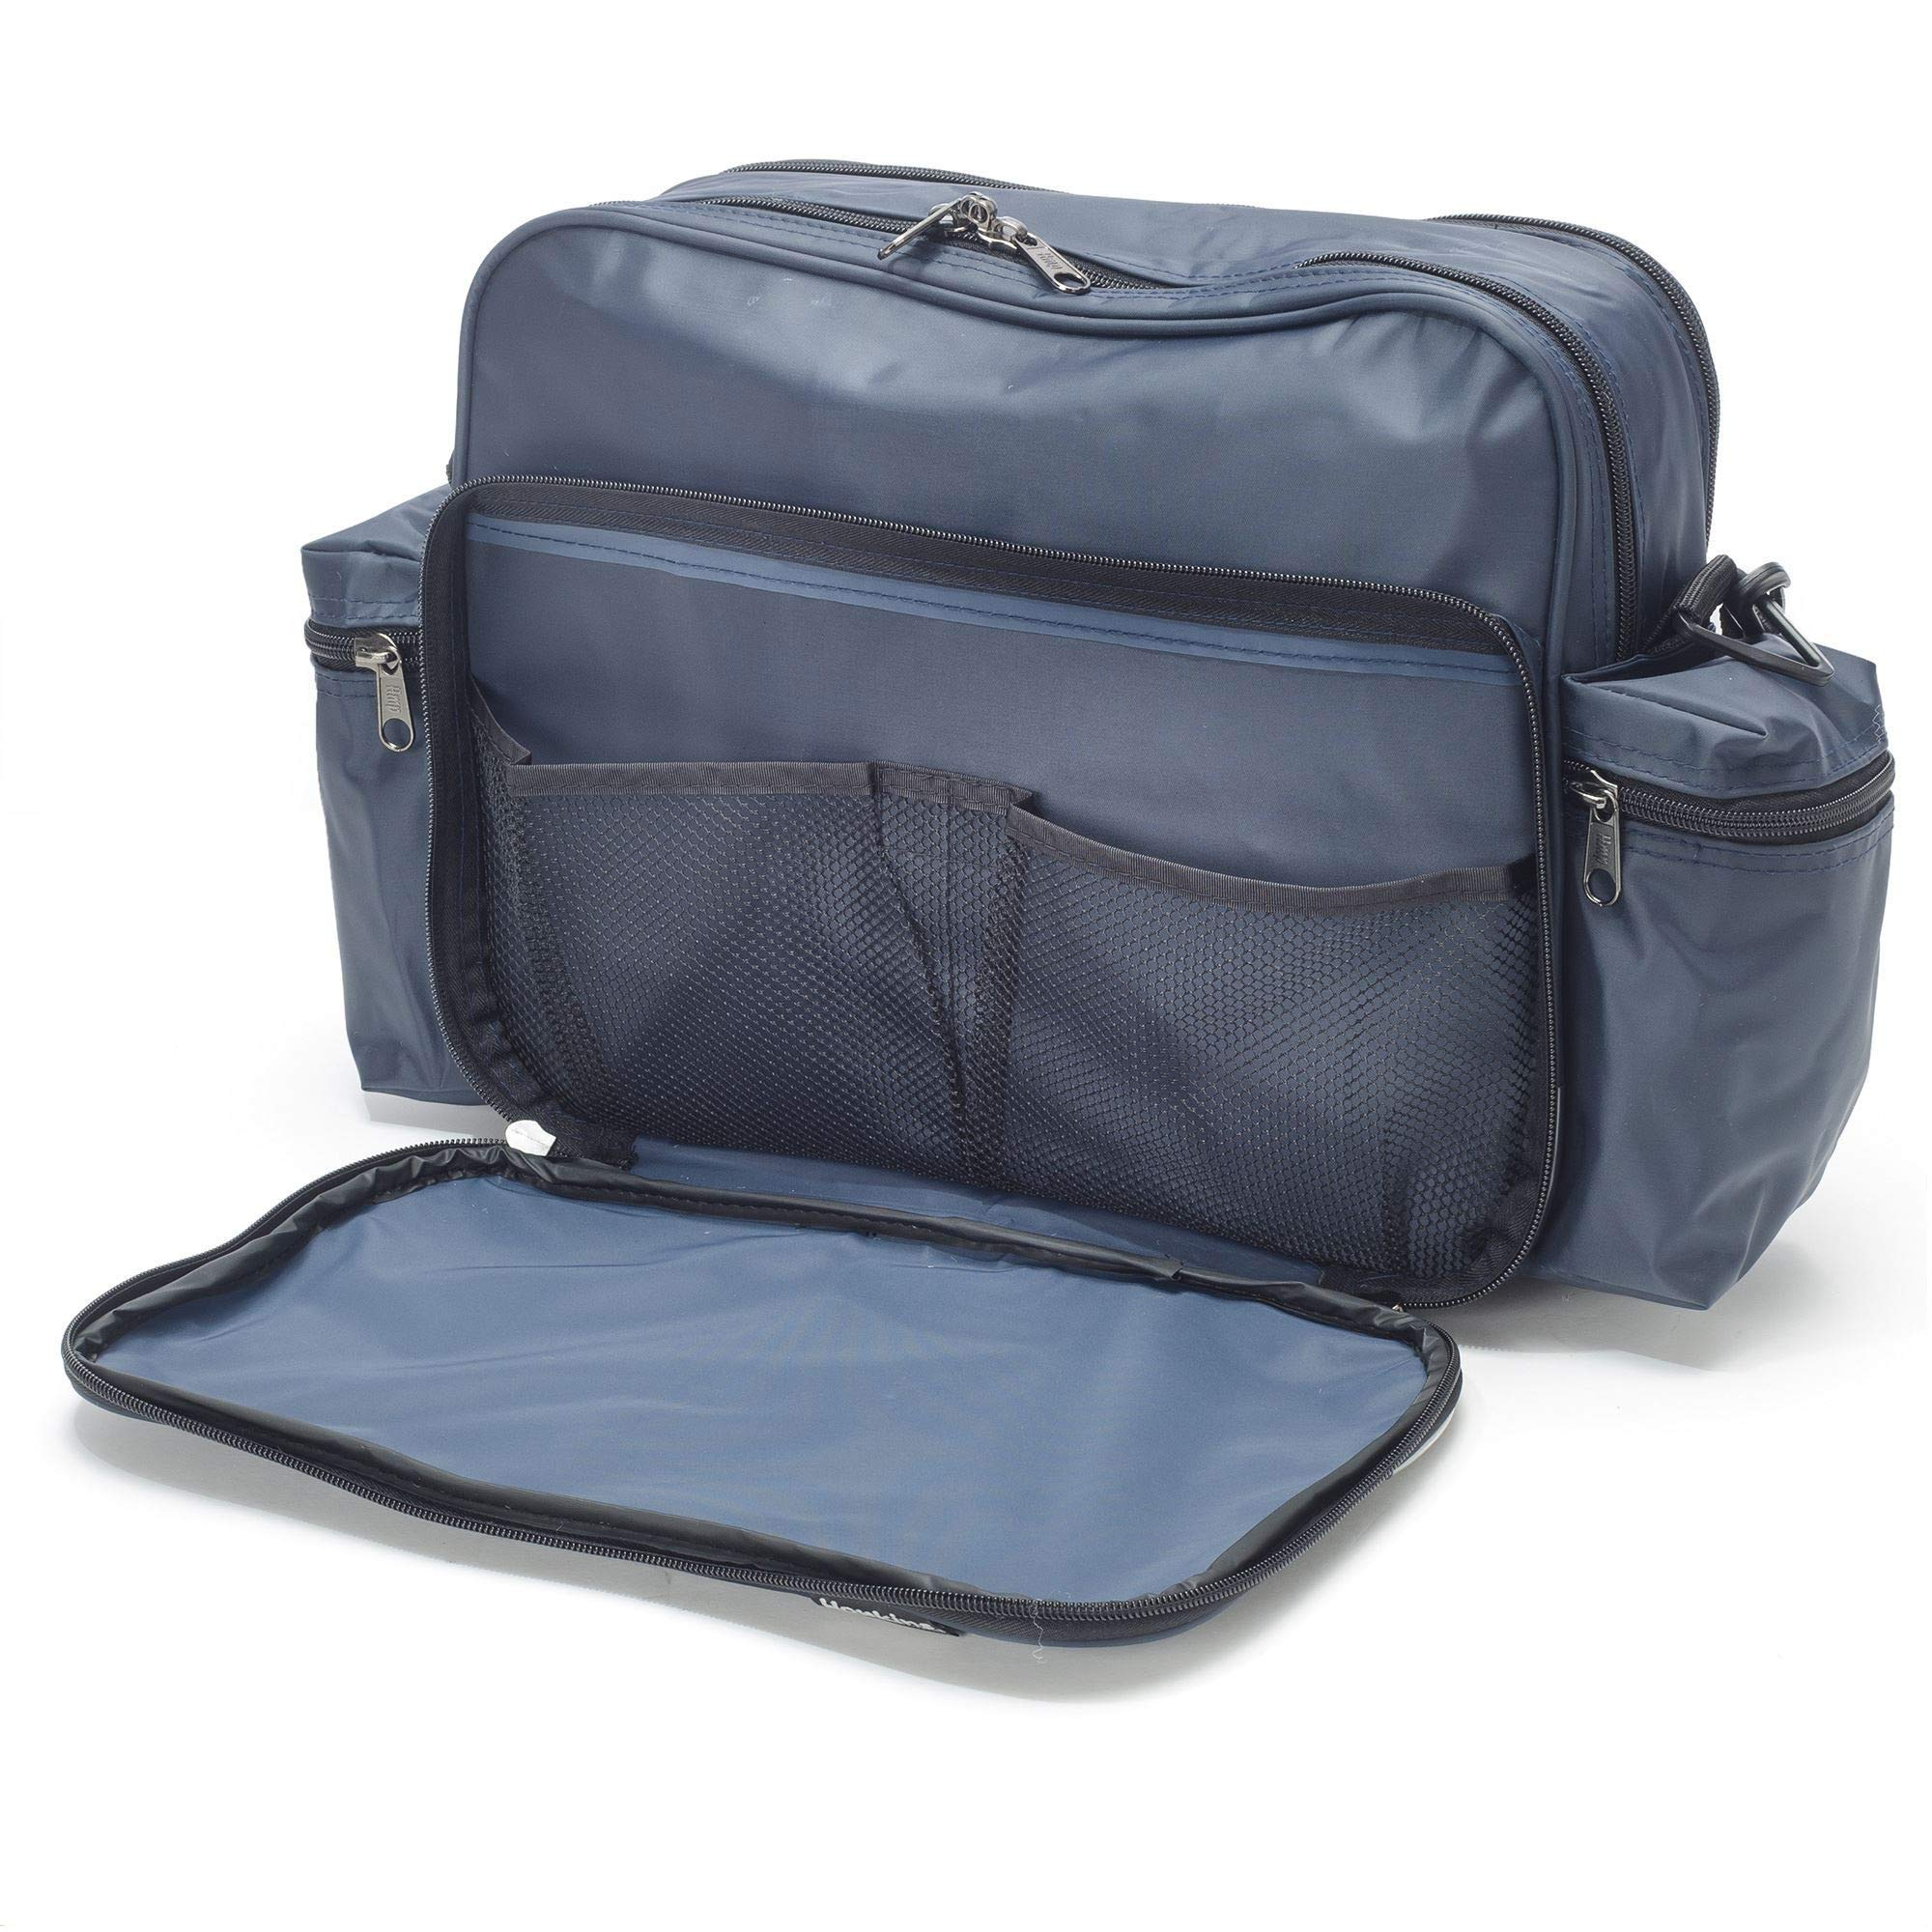 Hopkins Medical Products Original Home Health Shoulder Bag - Navy